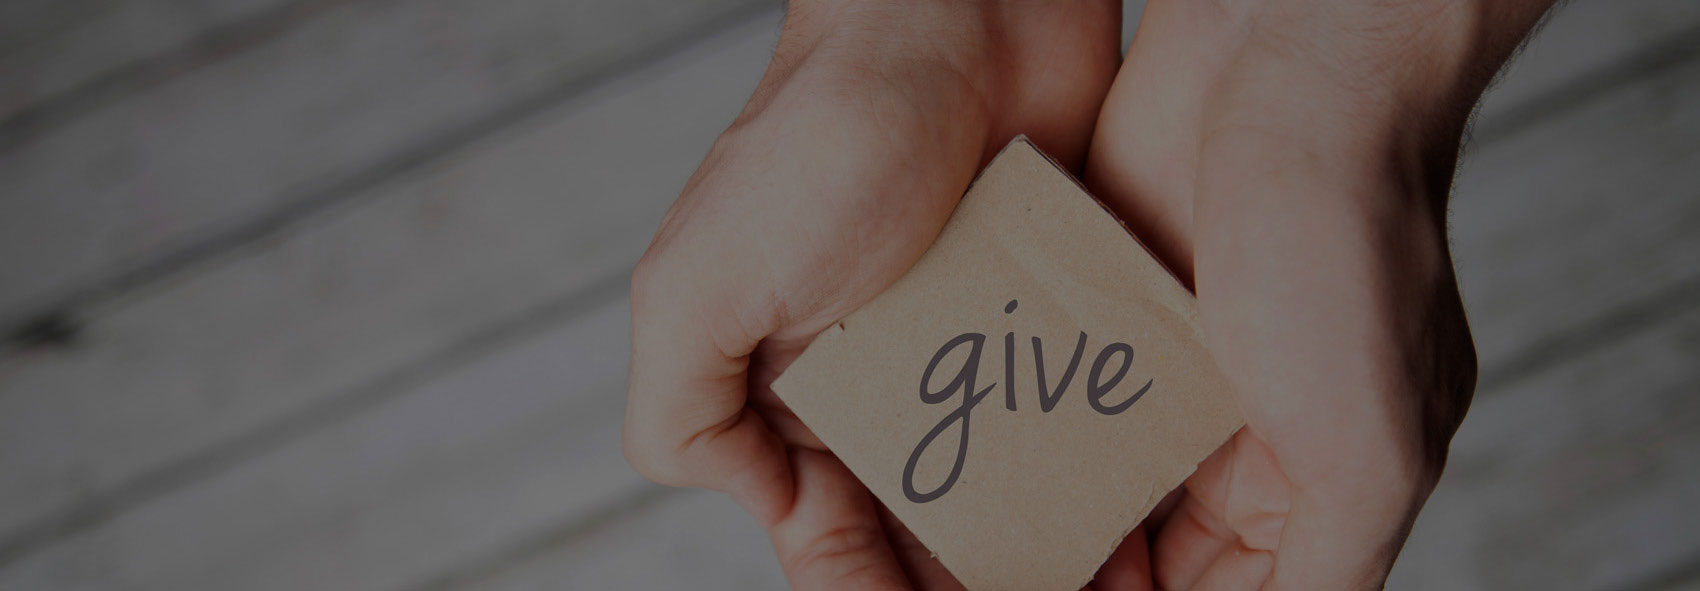 hands holding paper with 'give' on it